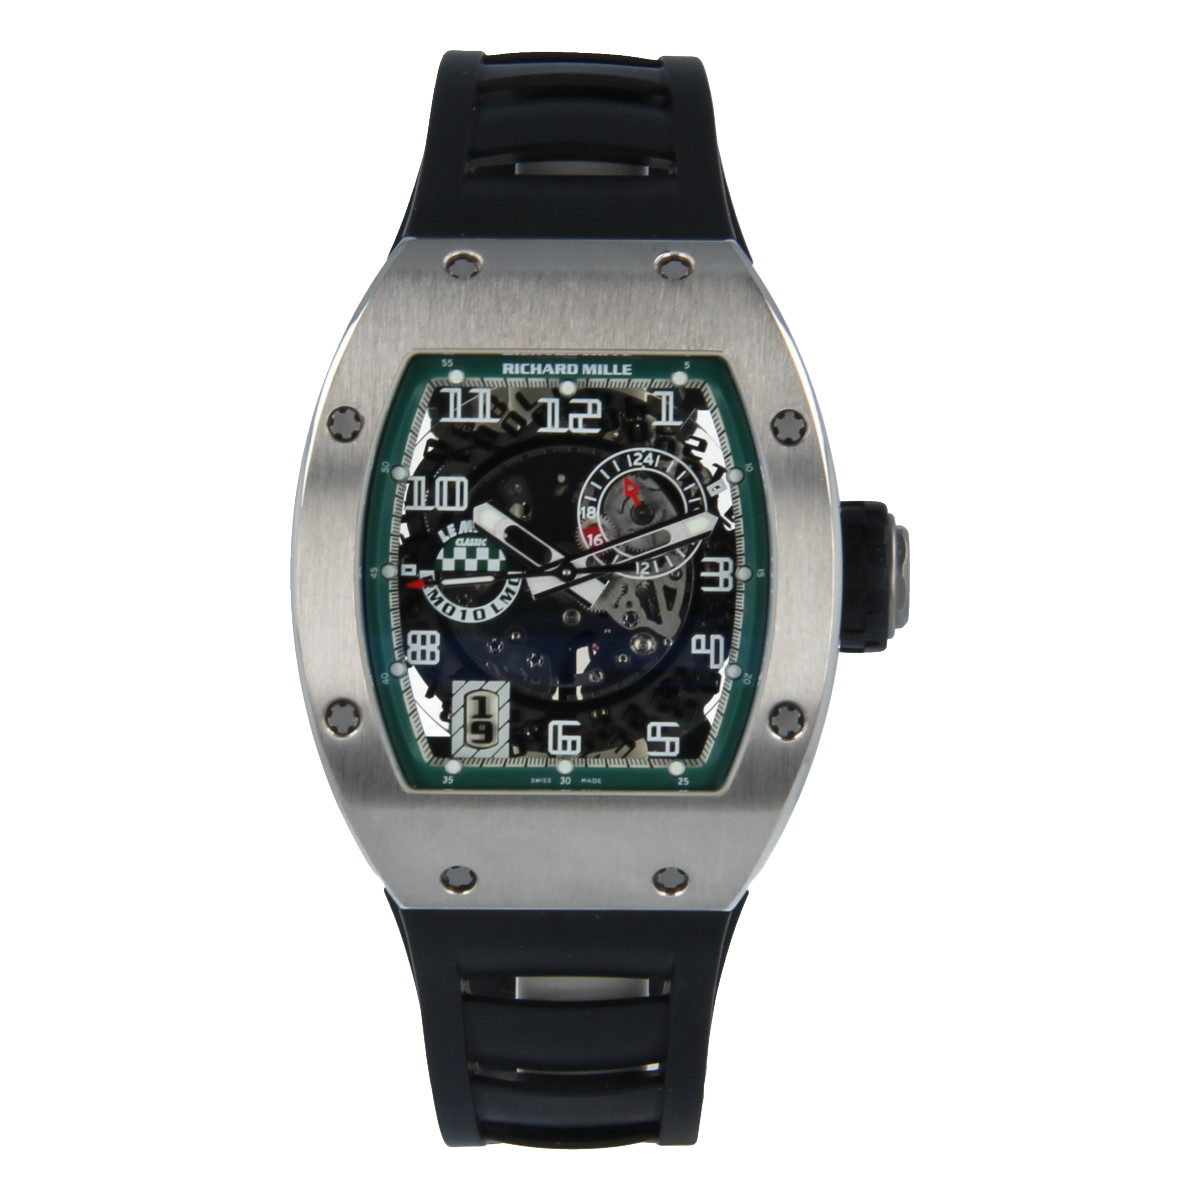 Richard Mille RM 010 Limited Edition Le Mans 30 Pcs | Buy pre-owned Richard Mille watch